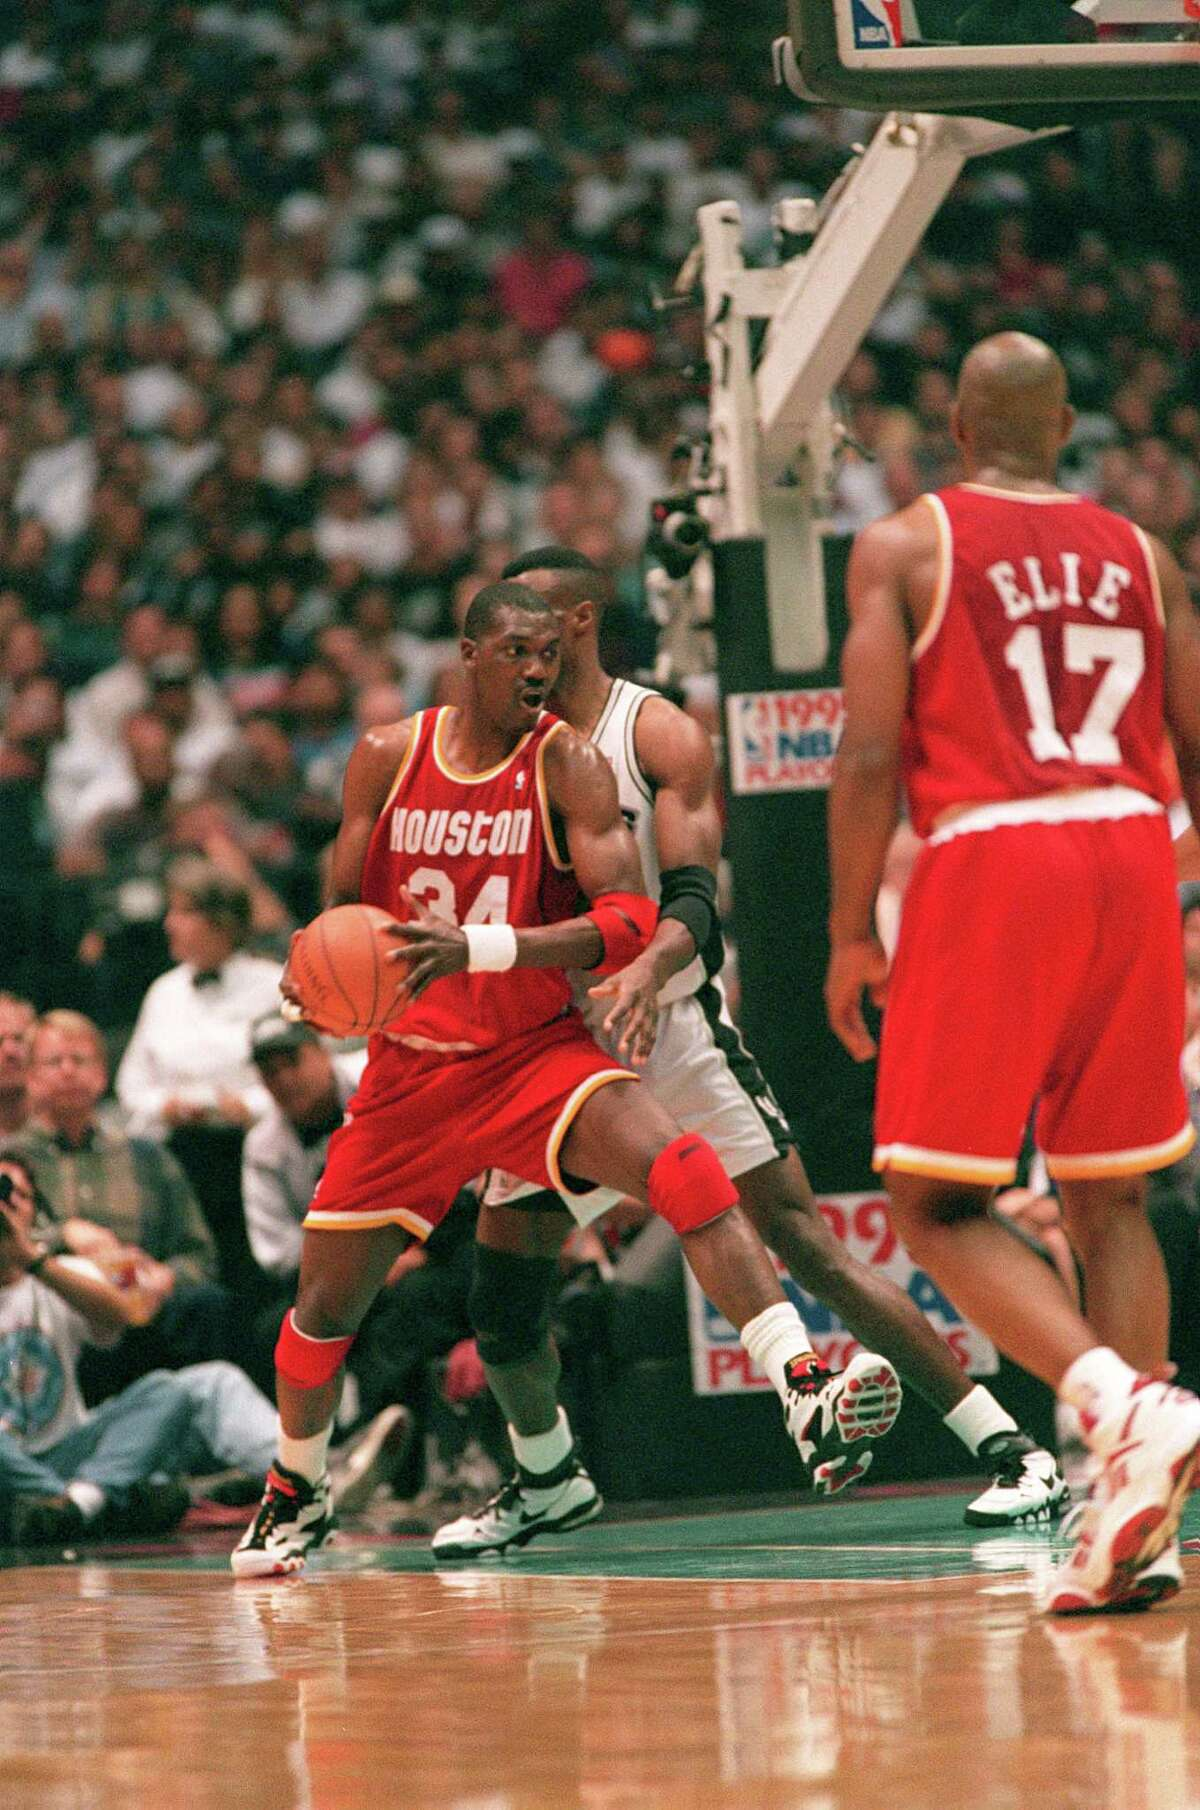 05/22/1995 - Houston Rocket center Hakeem Olajuwon is defended by Spurs David Robinson in a NBA playoffs game against the San Antonio Spurs in May 22, 1995.